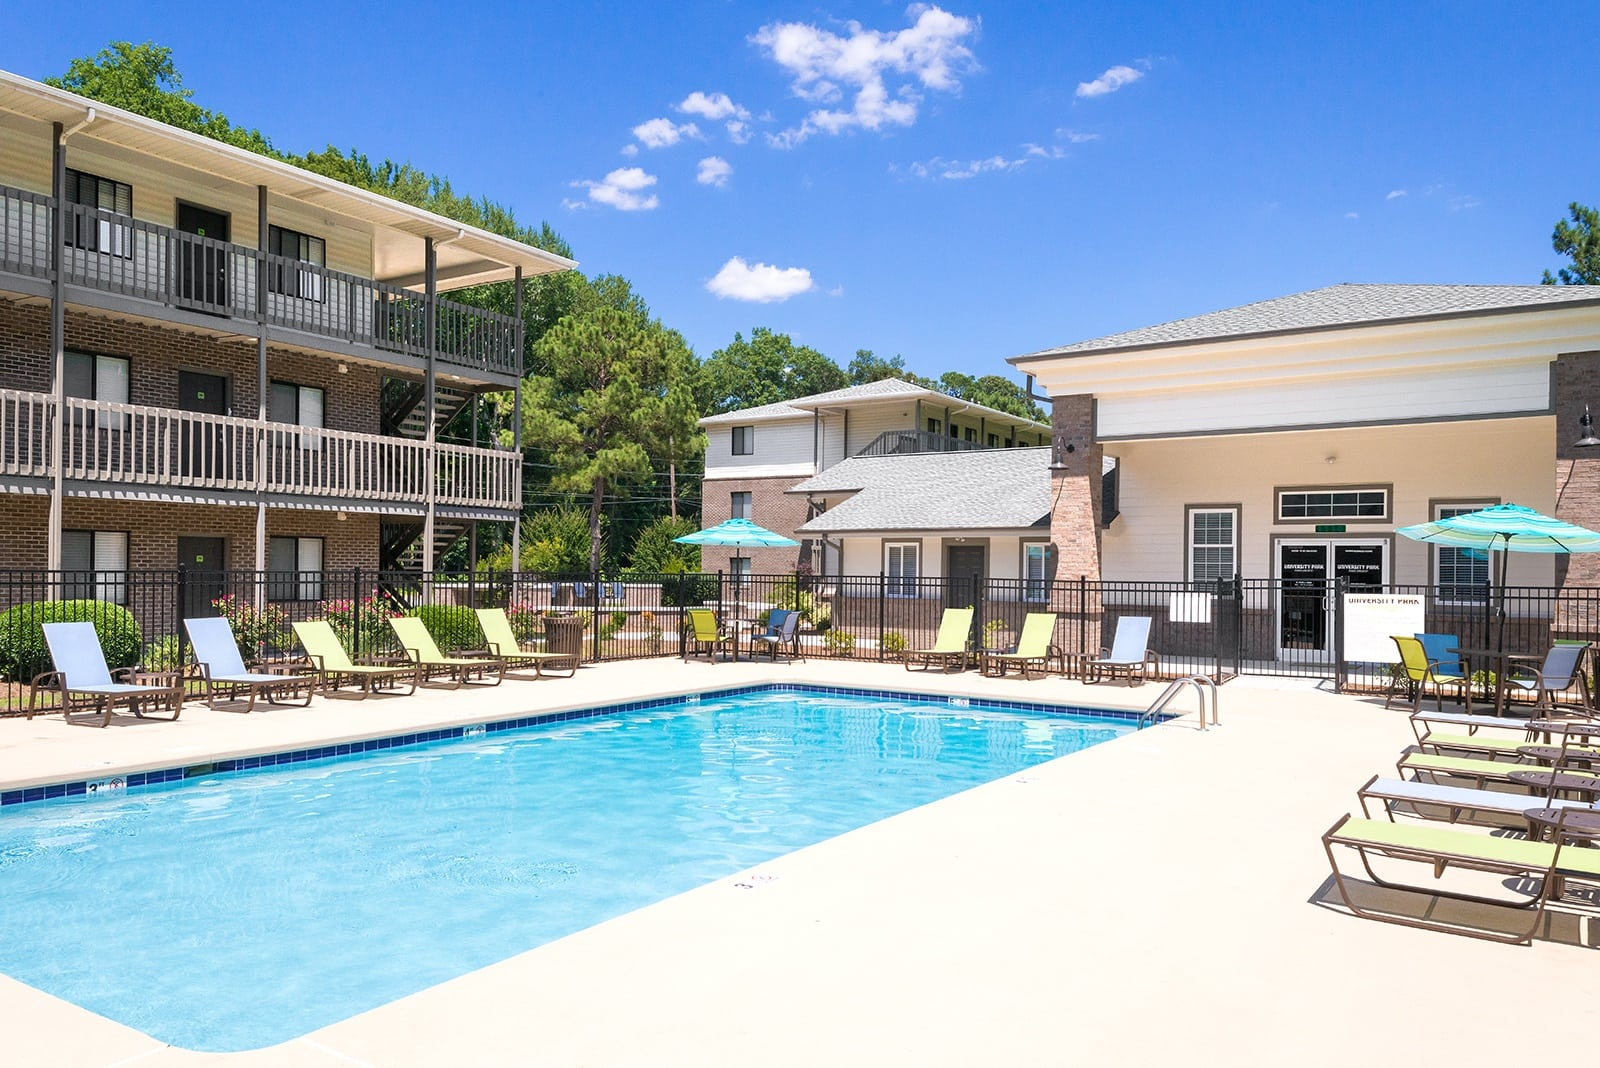 Sparkling pool at Apartments in Greenville